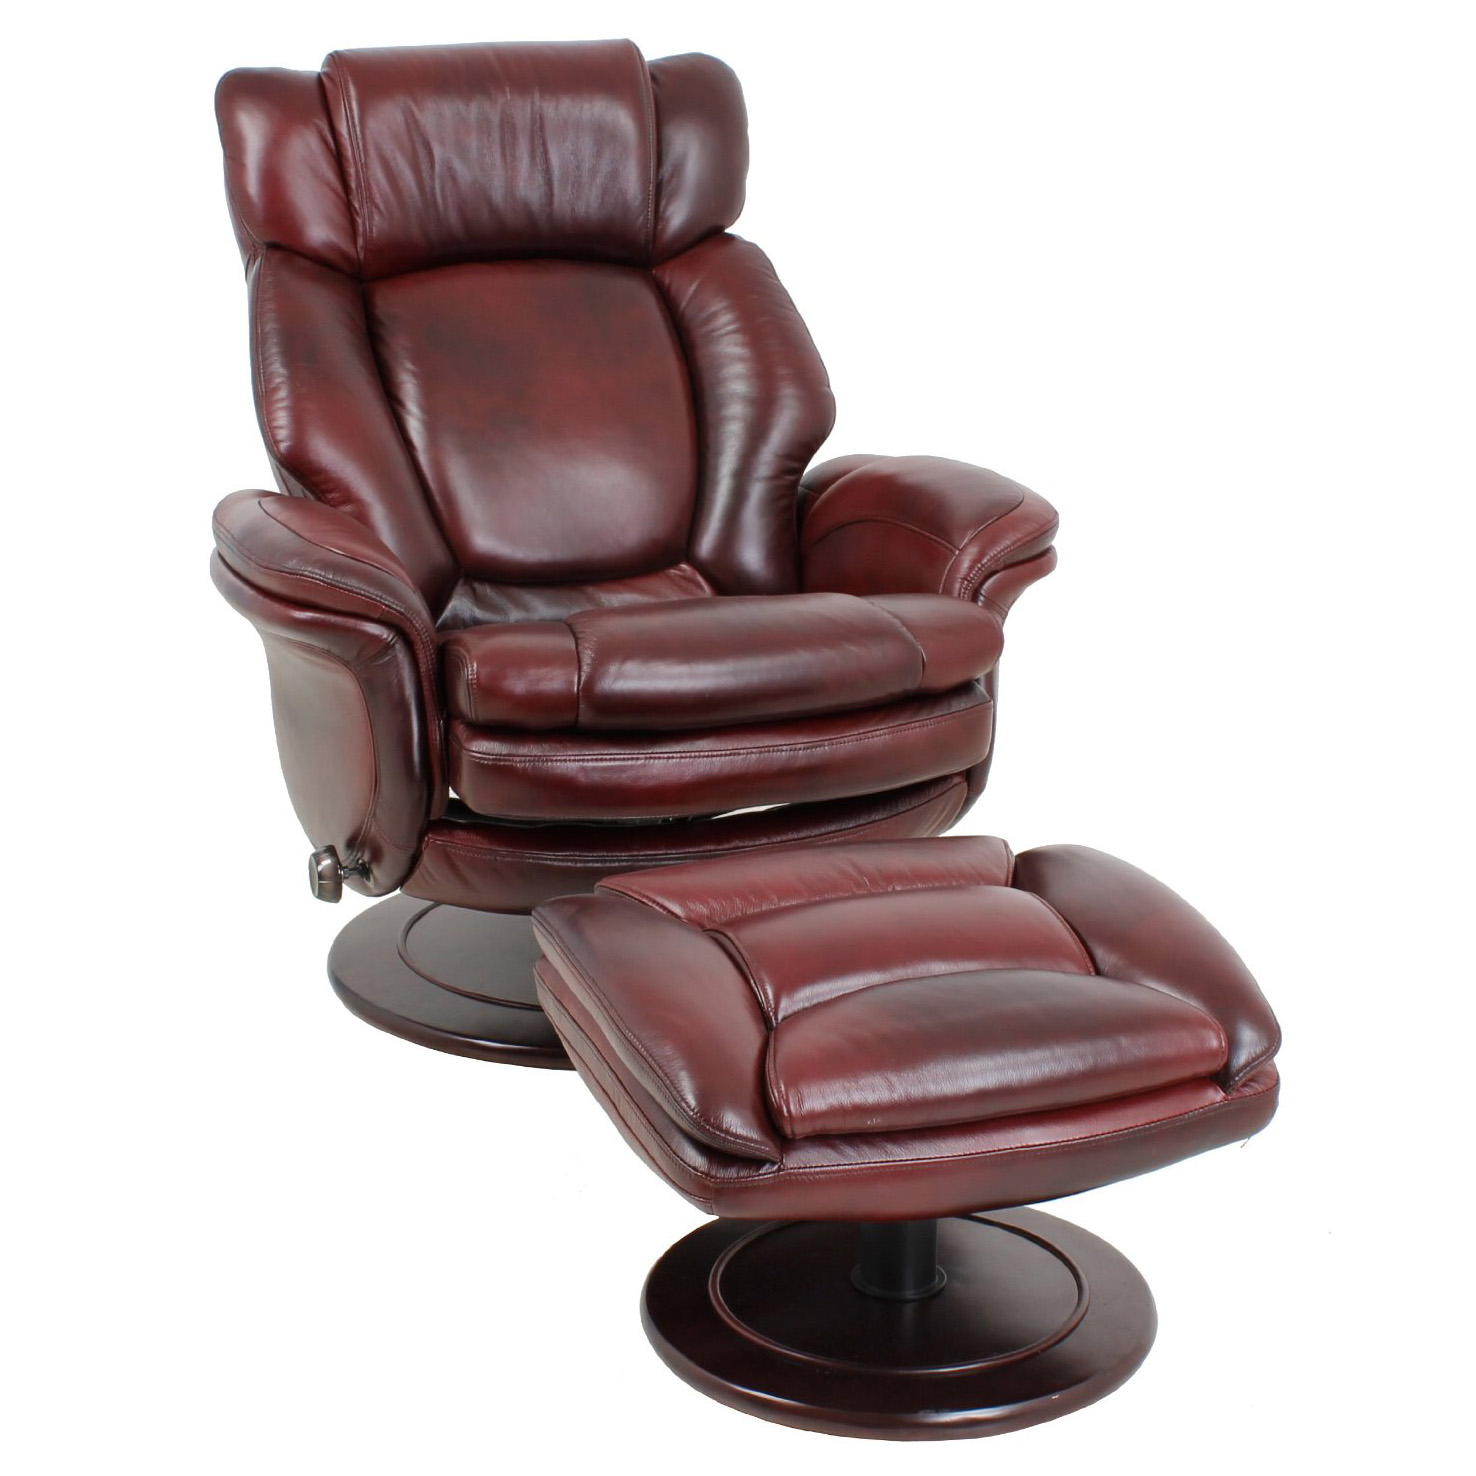 office recliners. barcalounger lumina ii leather recliner chair and ottoman office recliners k